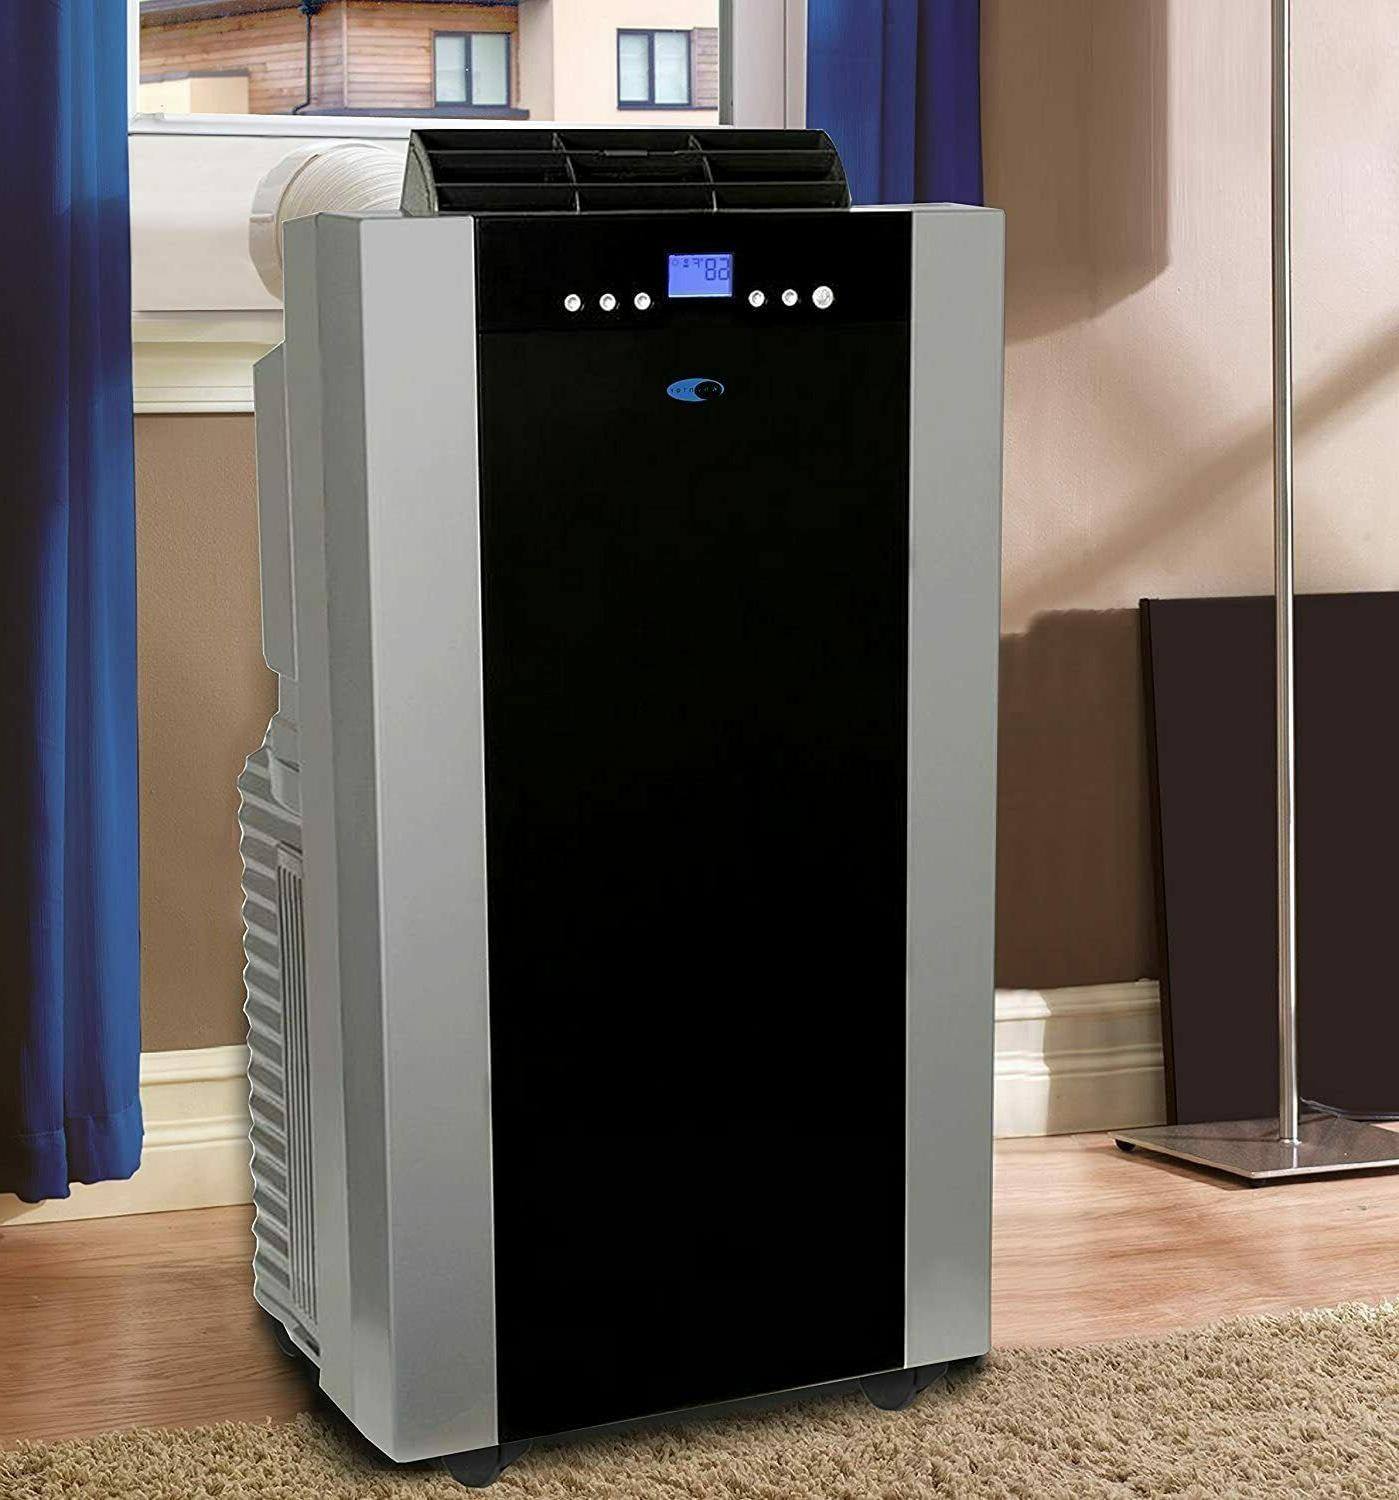 Whynter Portable Air Conditioner 14,000 BTU Dehumidifier Hea